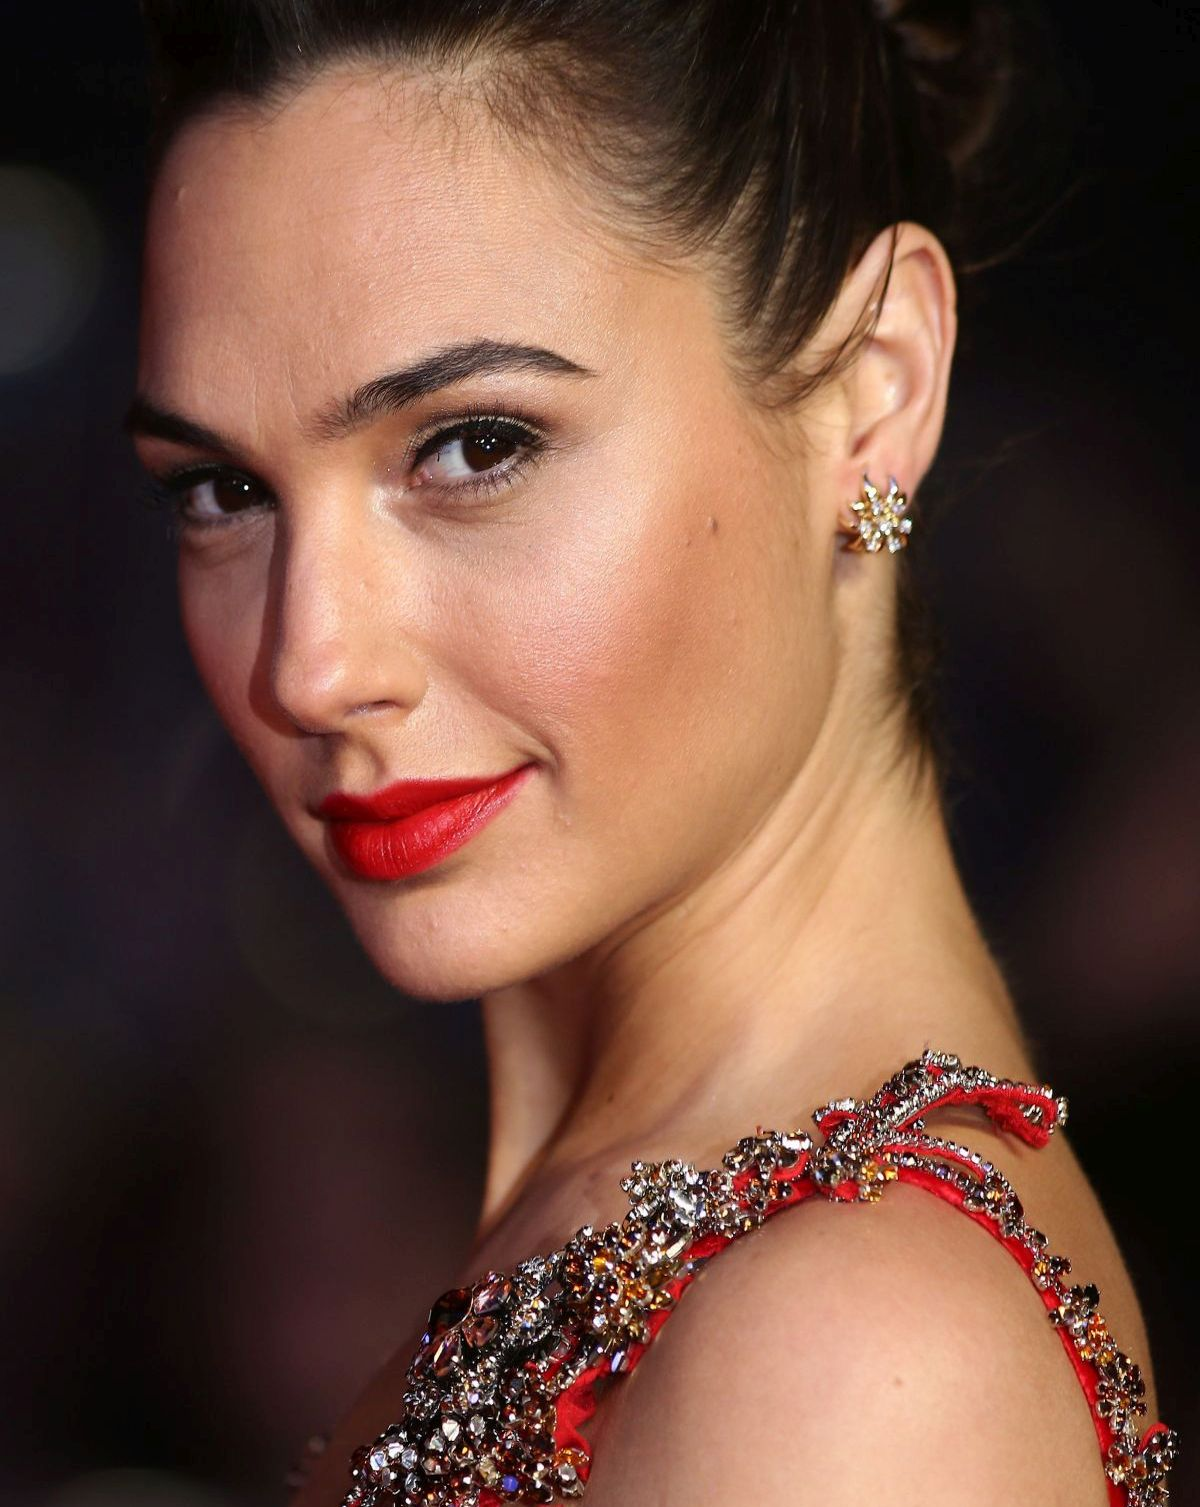 Gal Gadot Hot And Sexy Wide Screen Full Hd Wallpapers Top 10 Ranker